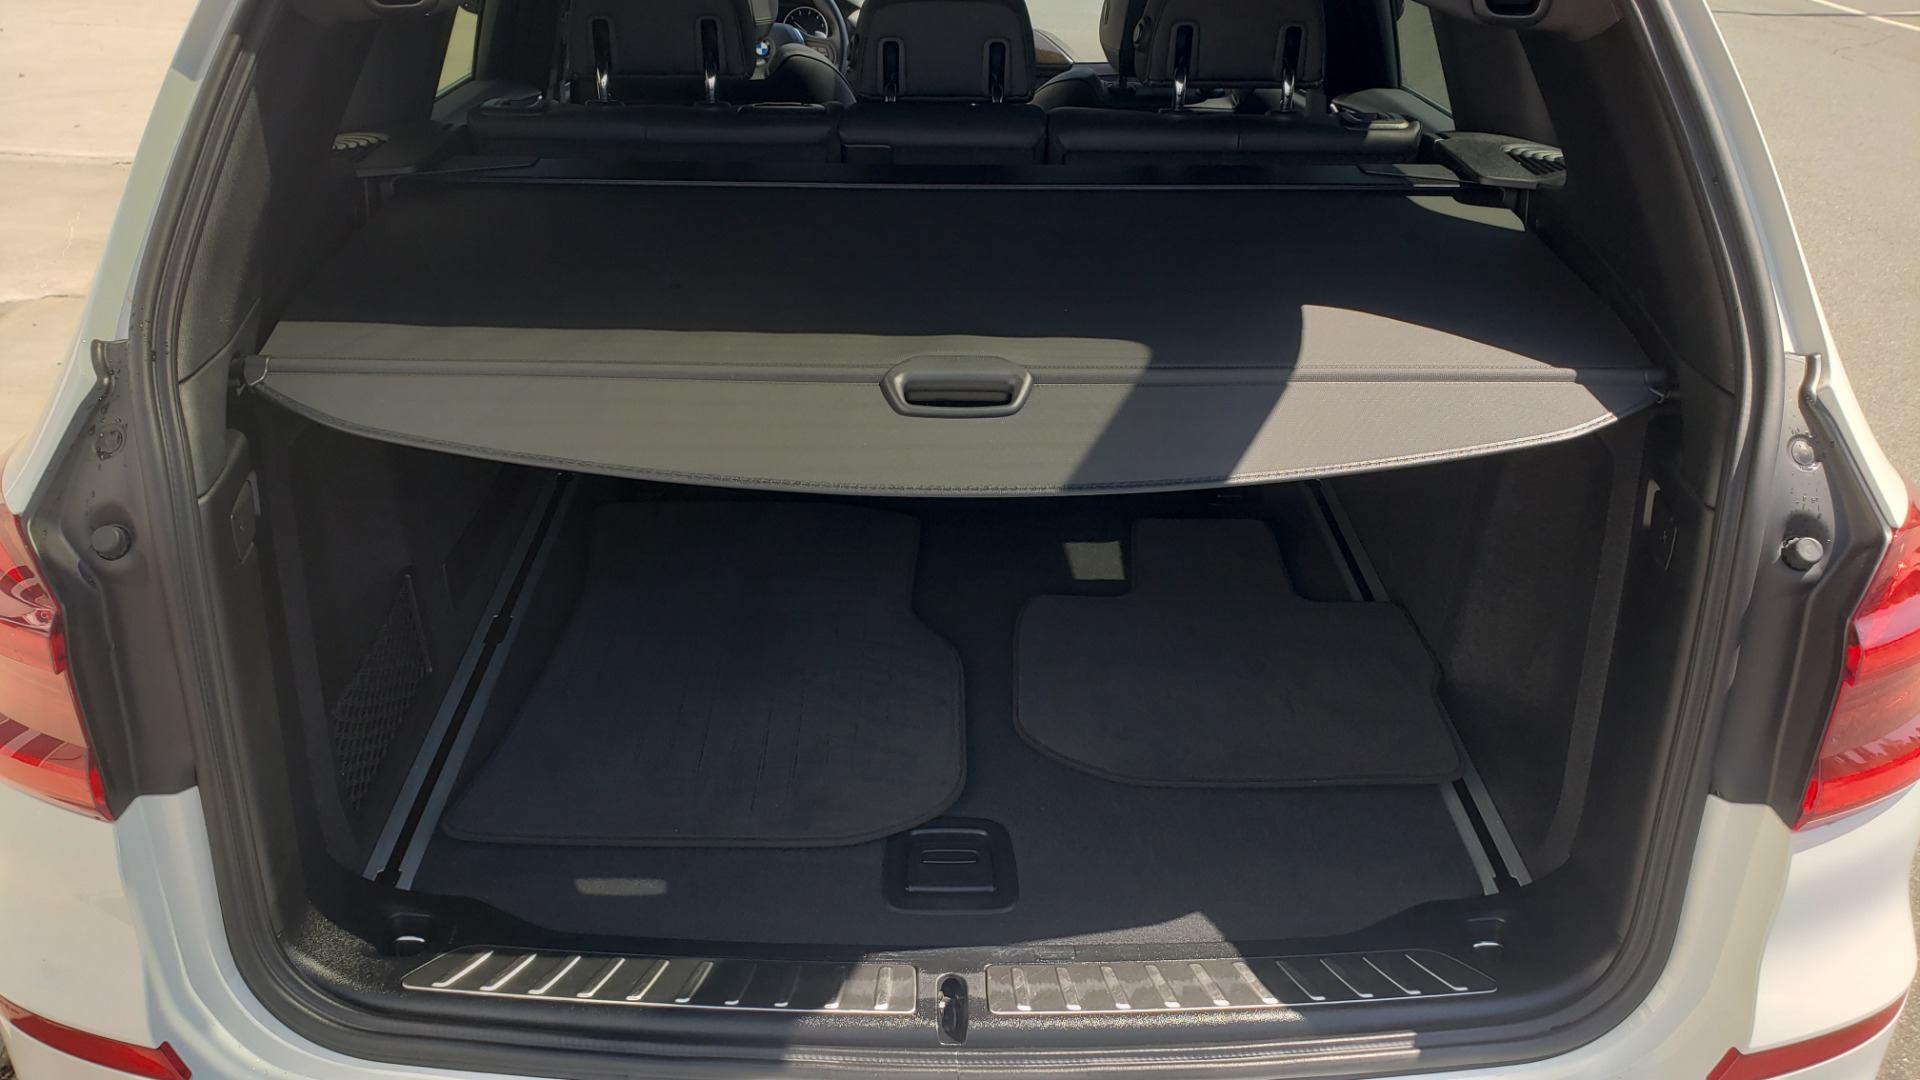 Used 2018 BMW X3 XDRIVE30I / CONV PKG / PANO-ROOF / HTD STS / REARVIEW for sale $33,995 at Formula Imports in Charlotte NC 28227 15